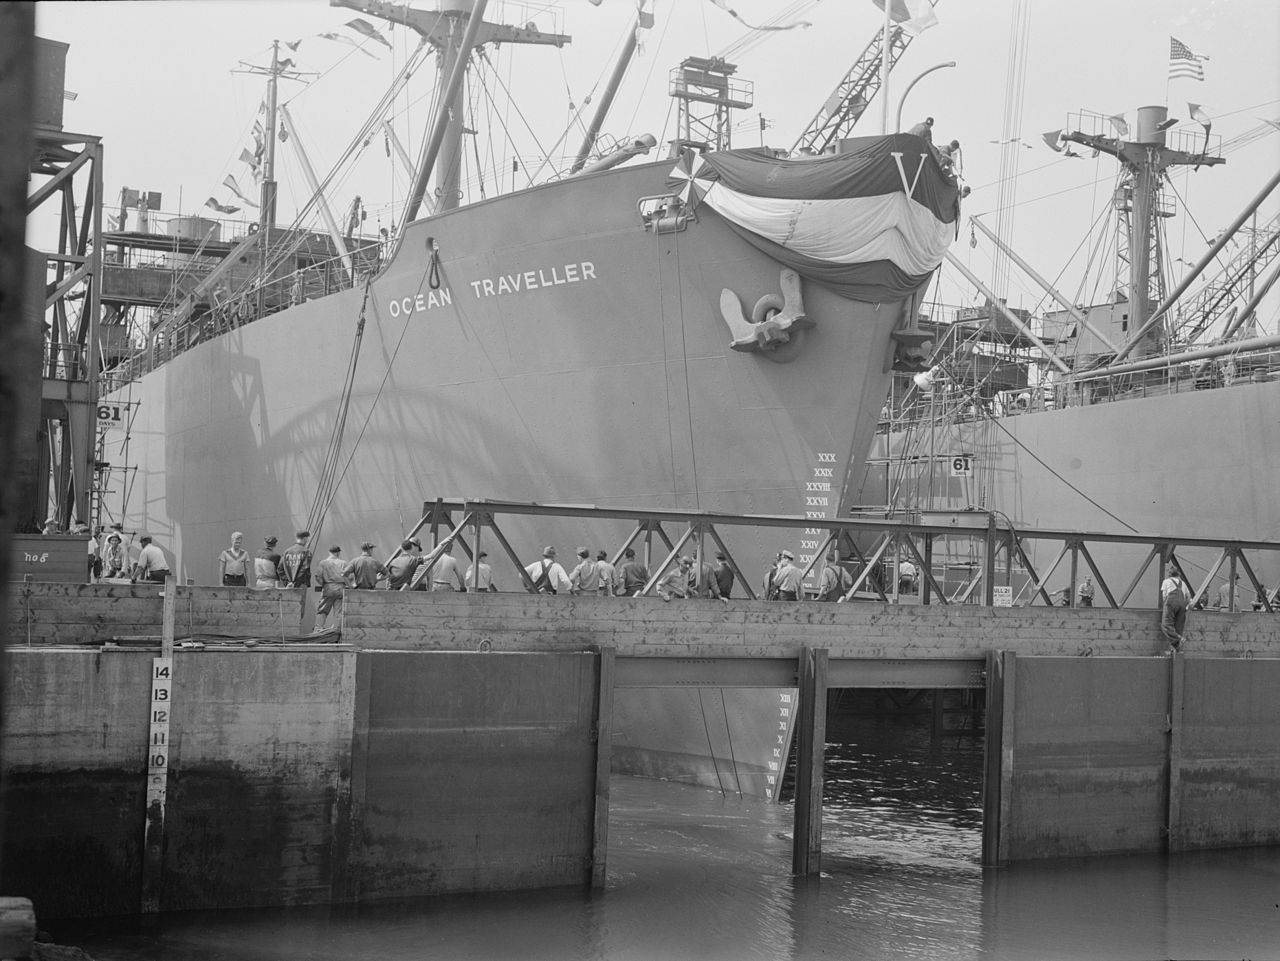 """Ocean Traveler, one of the 8 ships launched in Portland Maine on August 16, 1942... Five of which were Ocean class ships for England under the Lend-Lease program.""""Ocean Traveller LOC fsa.8b07487"""" by Photographer:Freeman, Albert - Library of Congress Farm Security Administration/Office of War Information"""